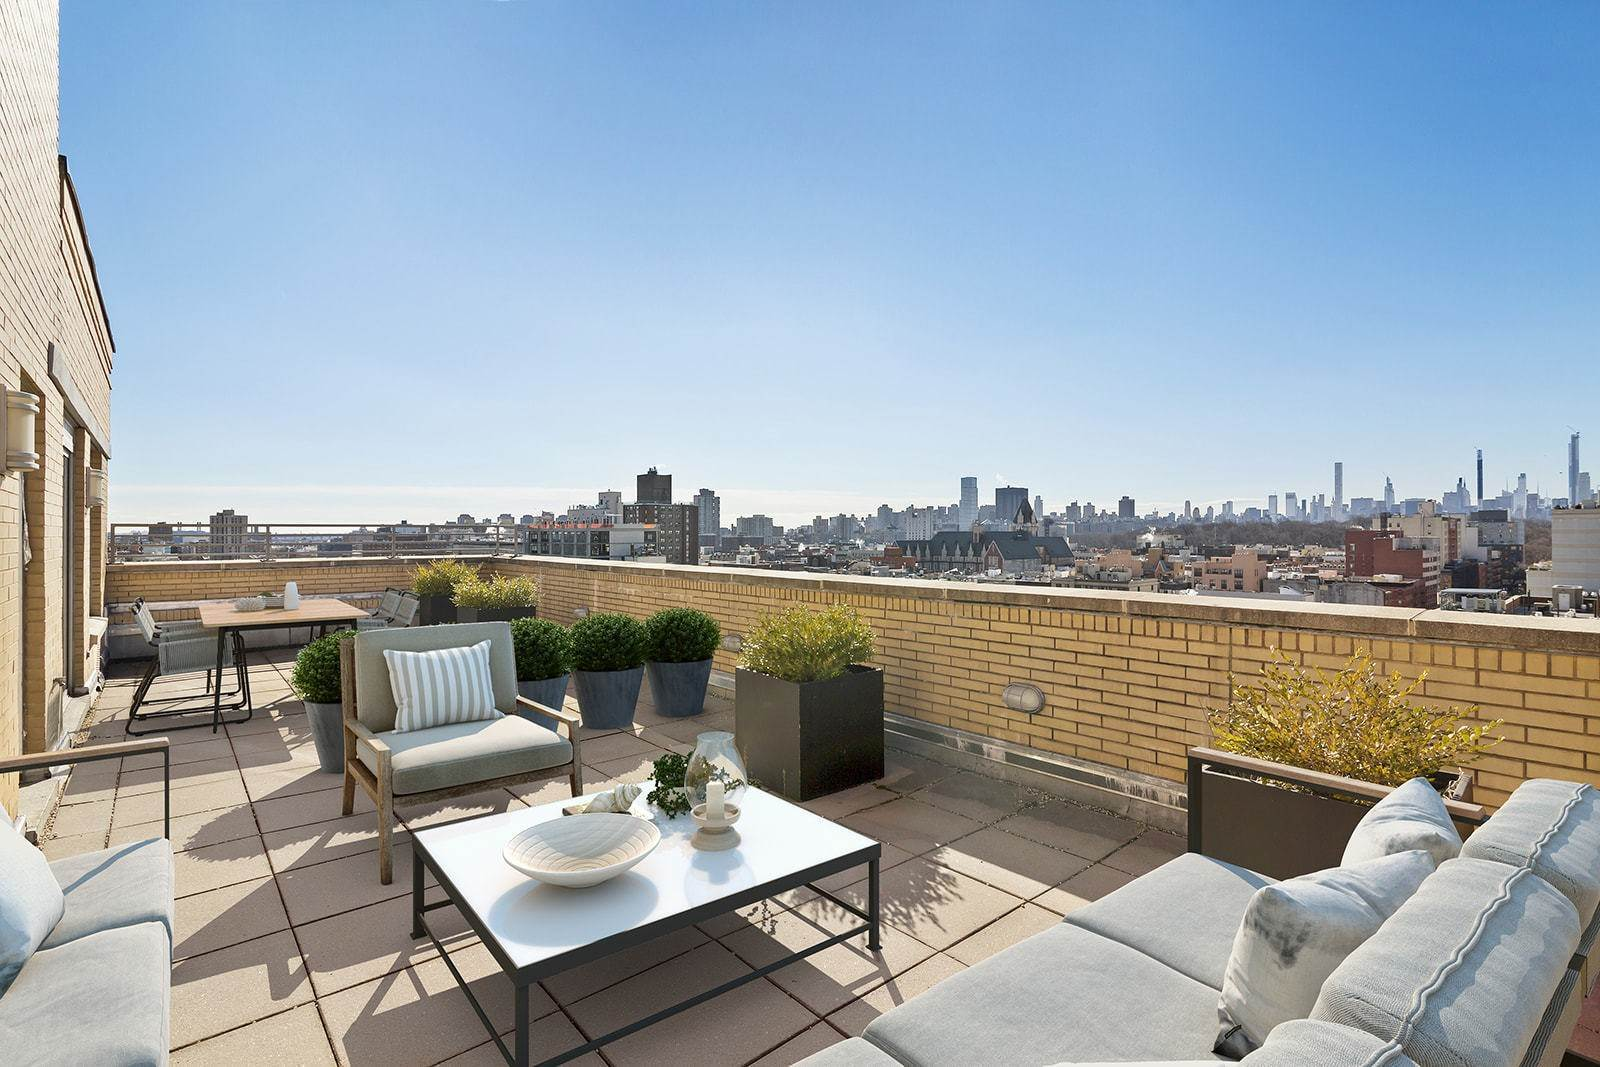 Condominium for Sale at SoHA 118 301 West 118th Street, PH New York, New York,10026 United States